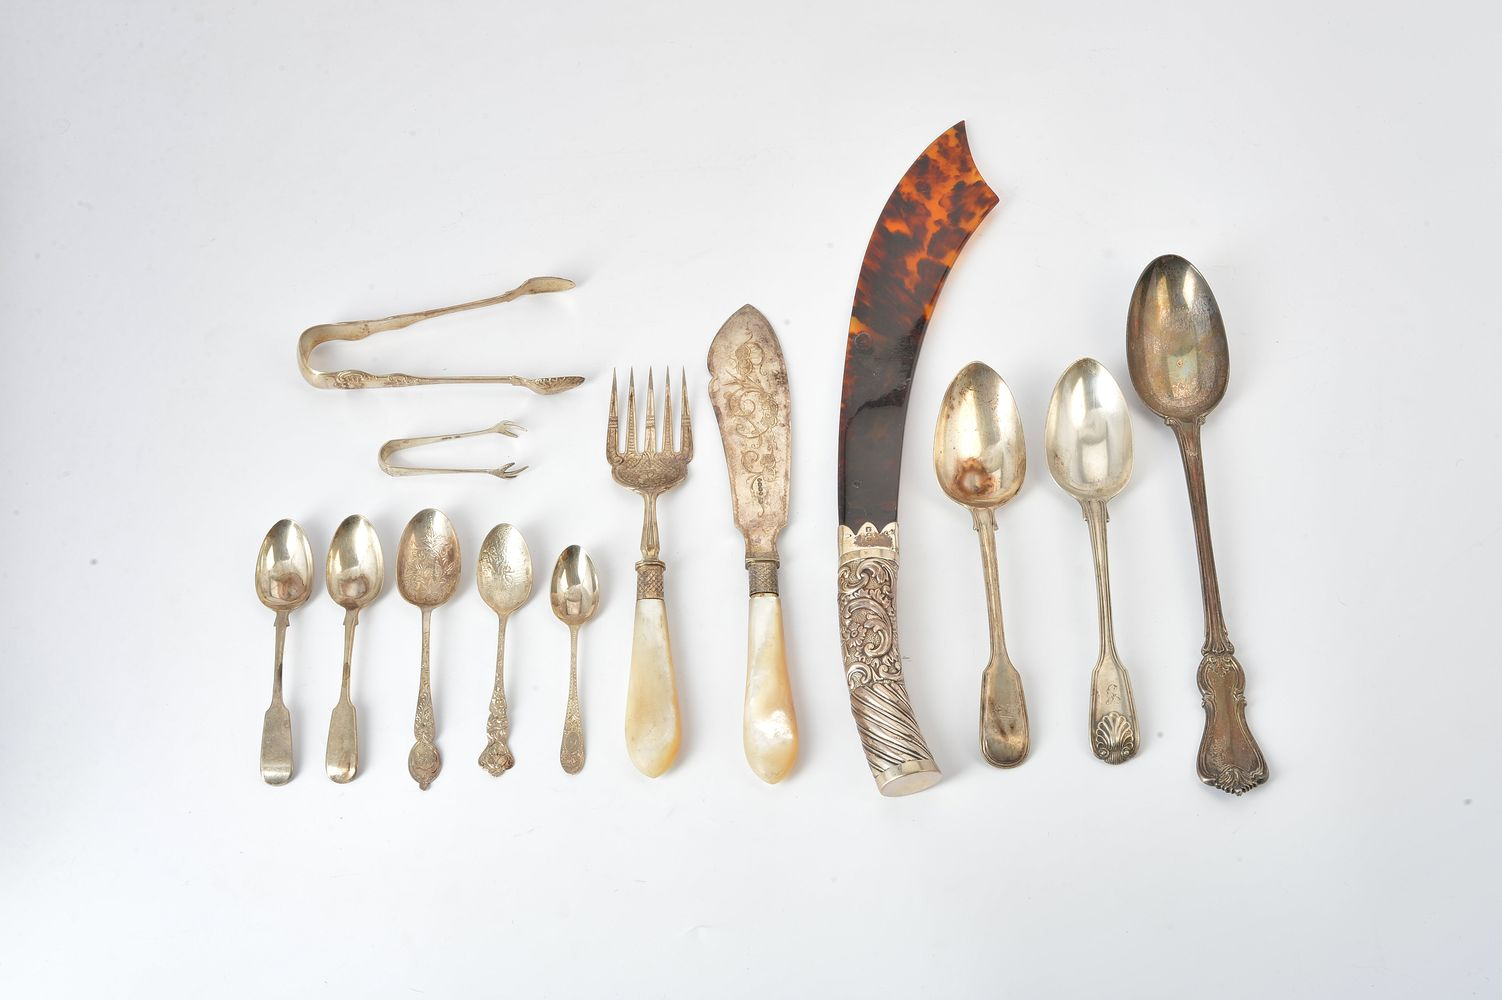 Lot 651 - ϒ A late Victorian silver handled tortoiseshell page turner and various flatware